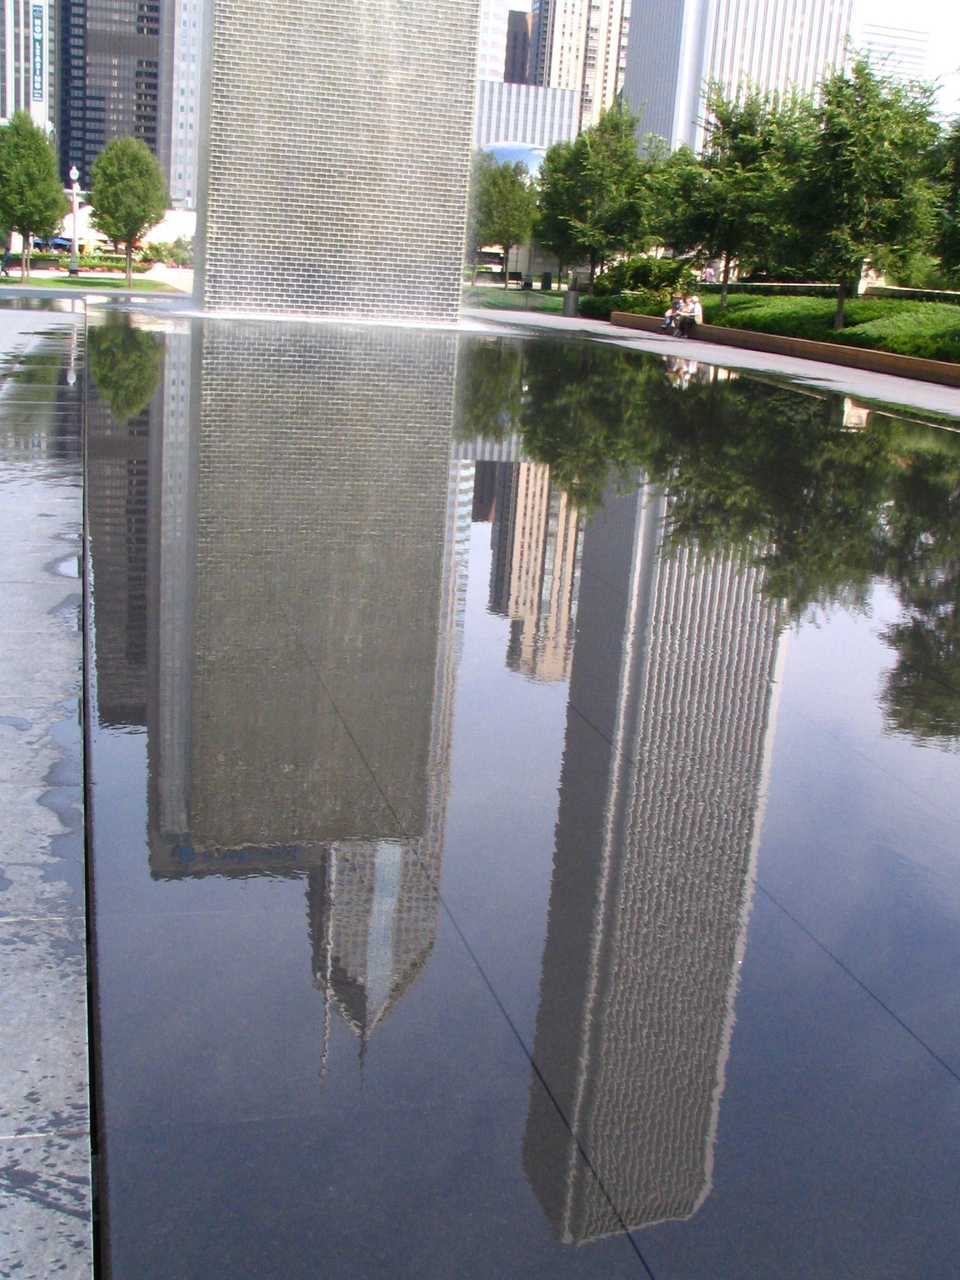 Reflection of skyscrapers in water